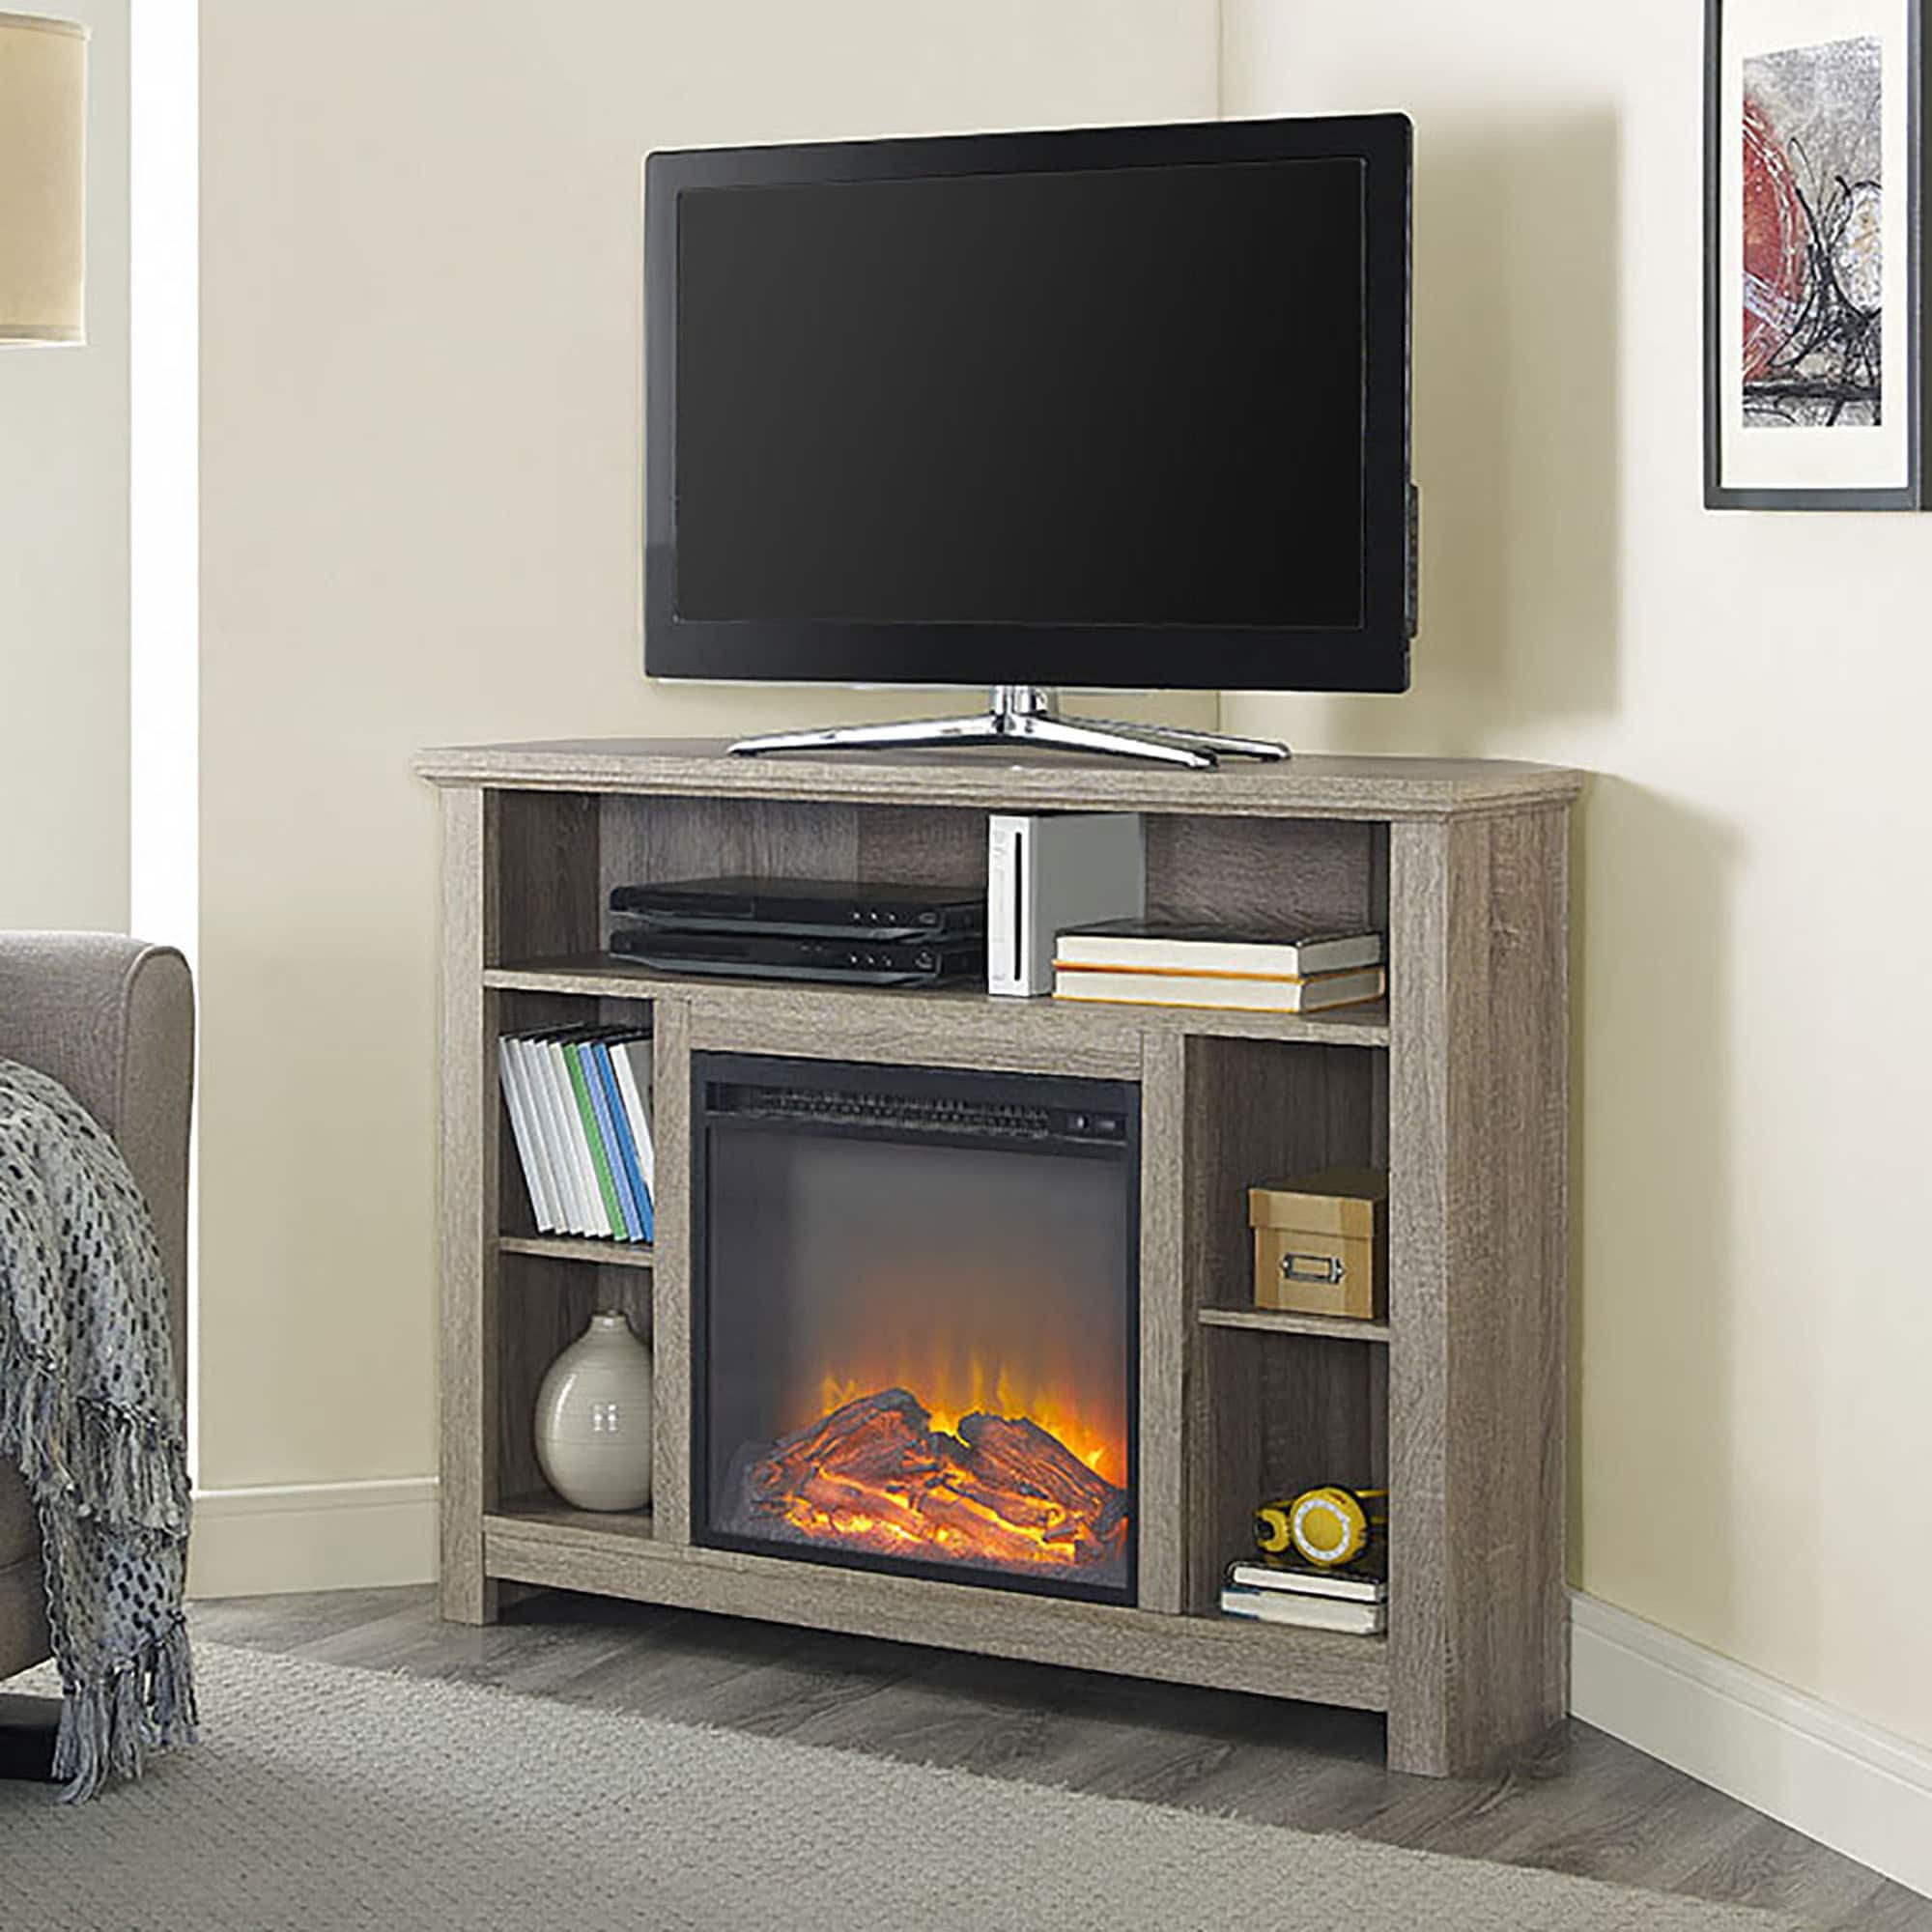 "Middlebrook Designs 44"" Highboy Corner Fireplace TV Stand - Driftwood - 44 x 16 x 30h"